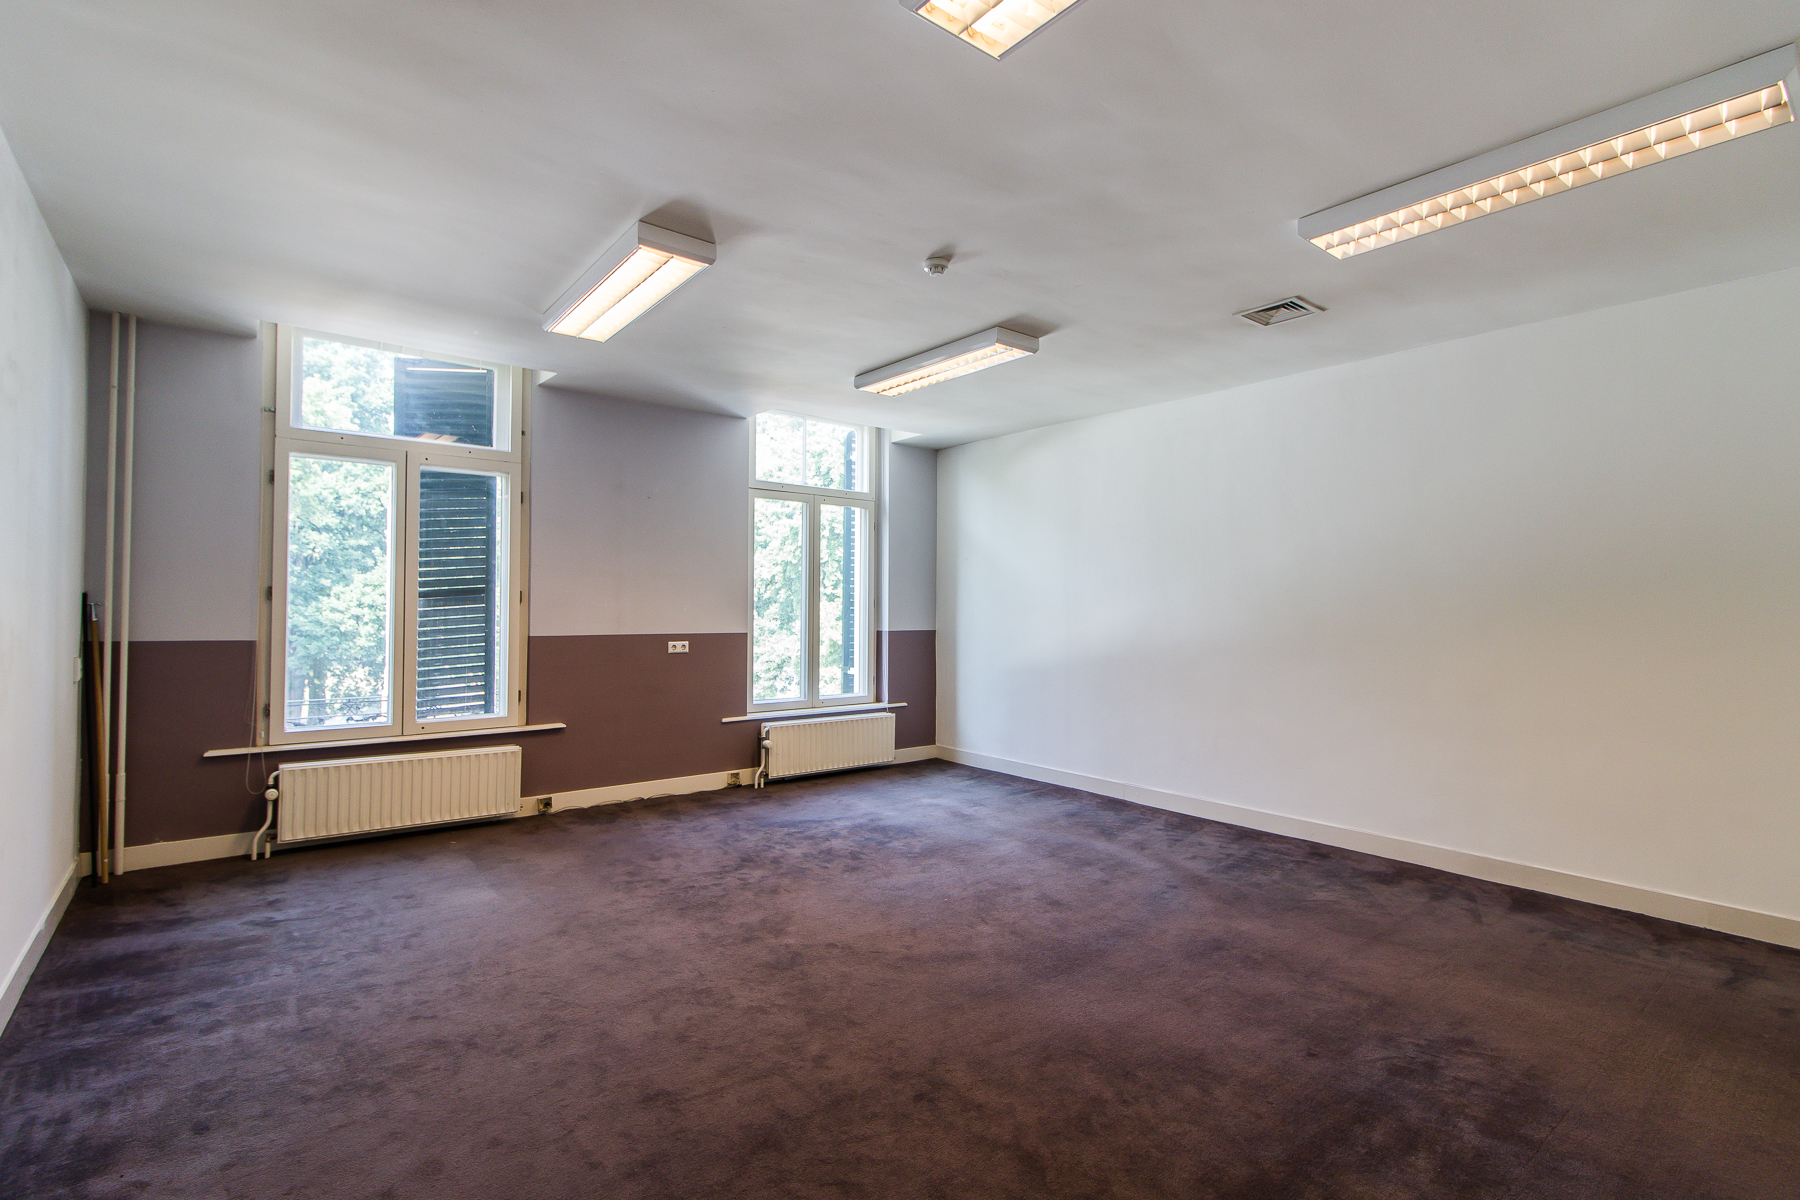 Ample choice of office spaces